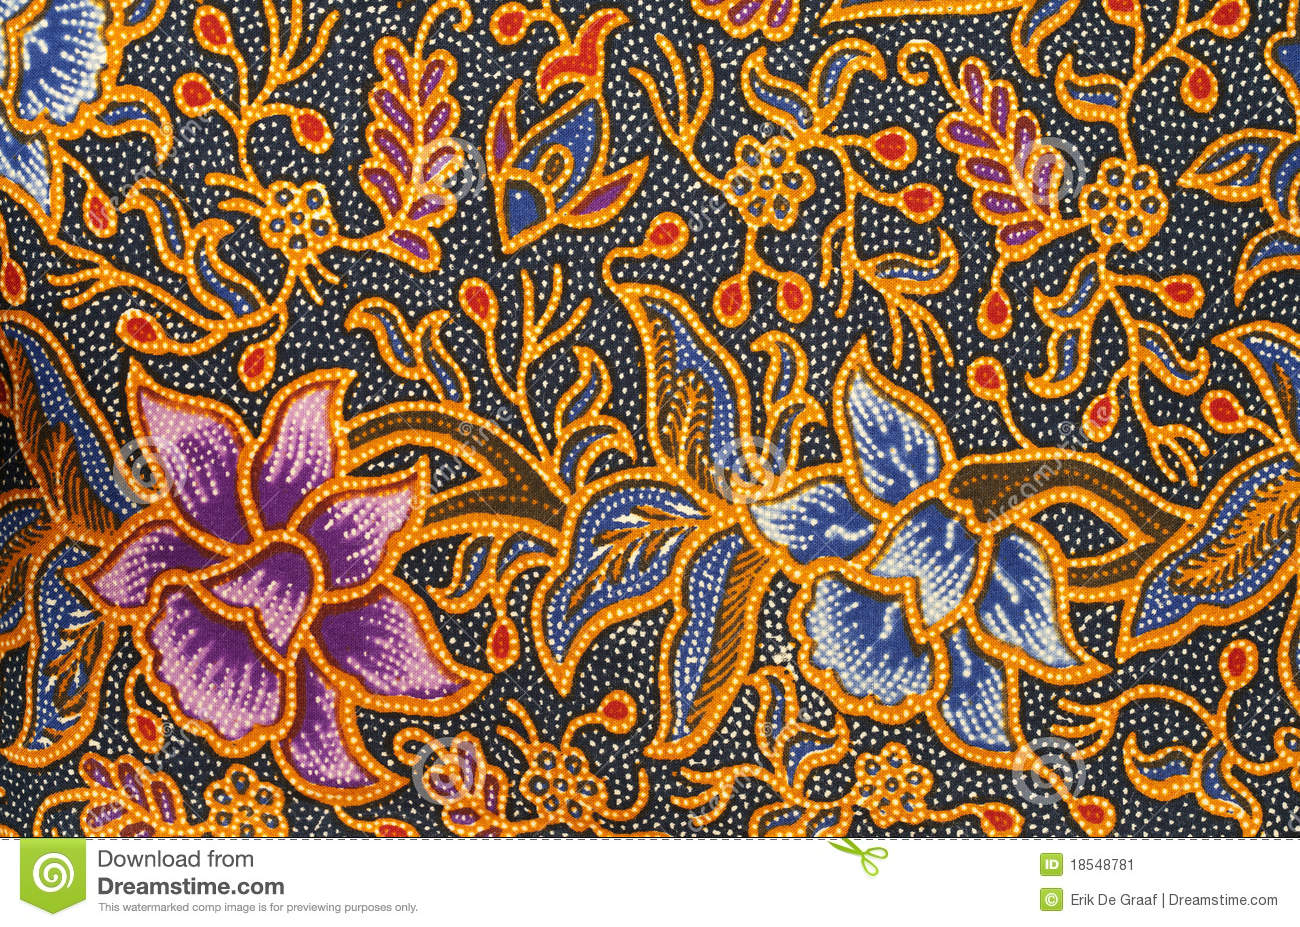 Detail of a batik design from Indonesia.